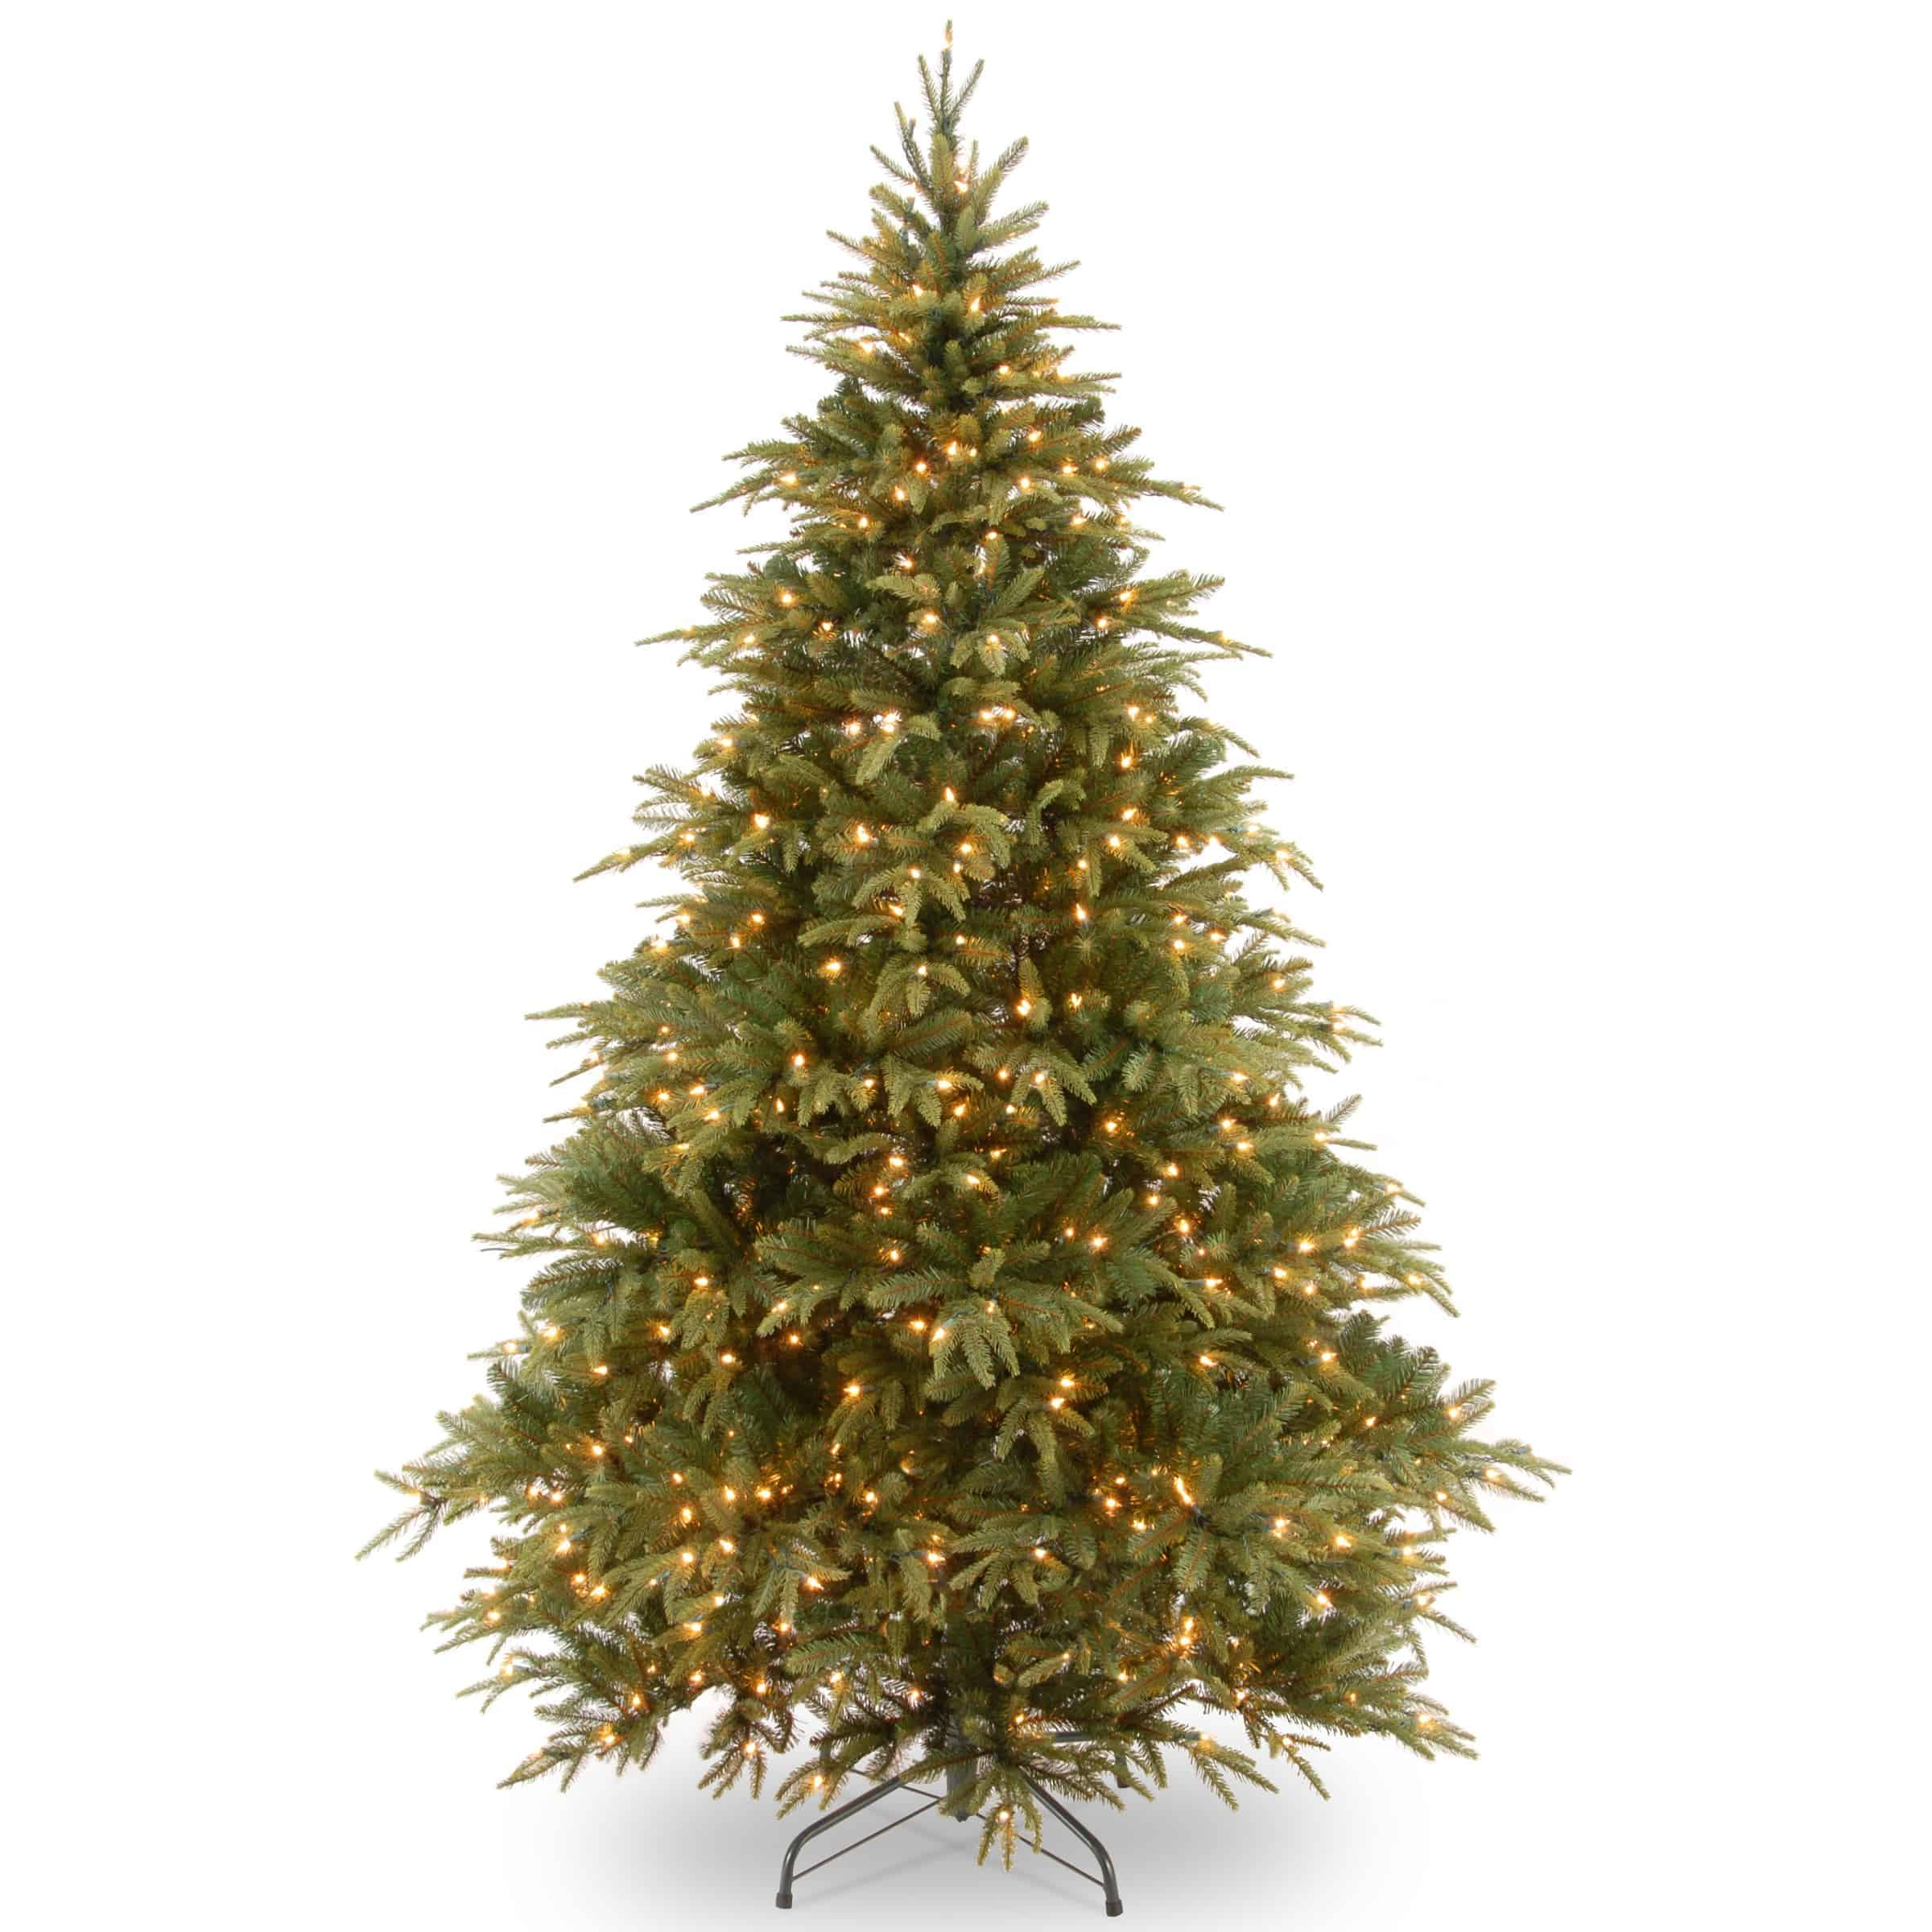 Christmas Tree Clearance.7 5 Ft Warrington Spruce Pre Lit Artificial Christmas Tree Online Only